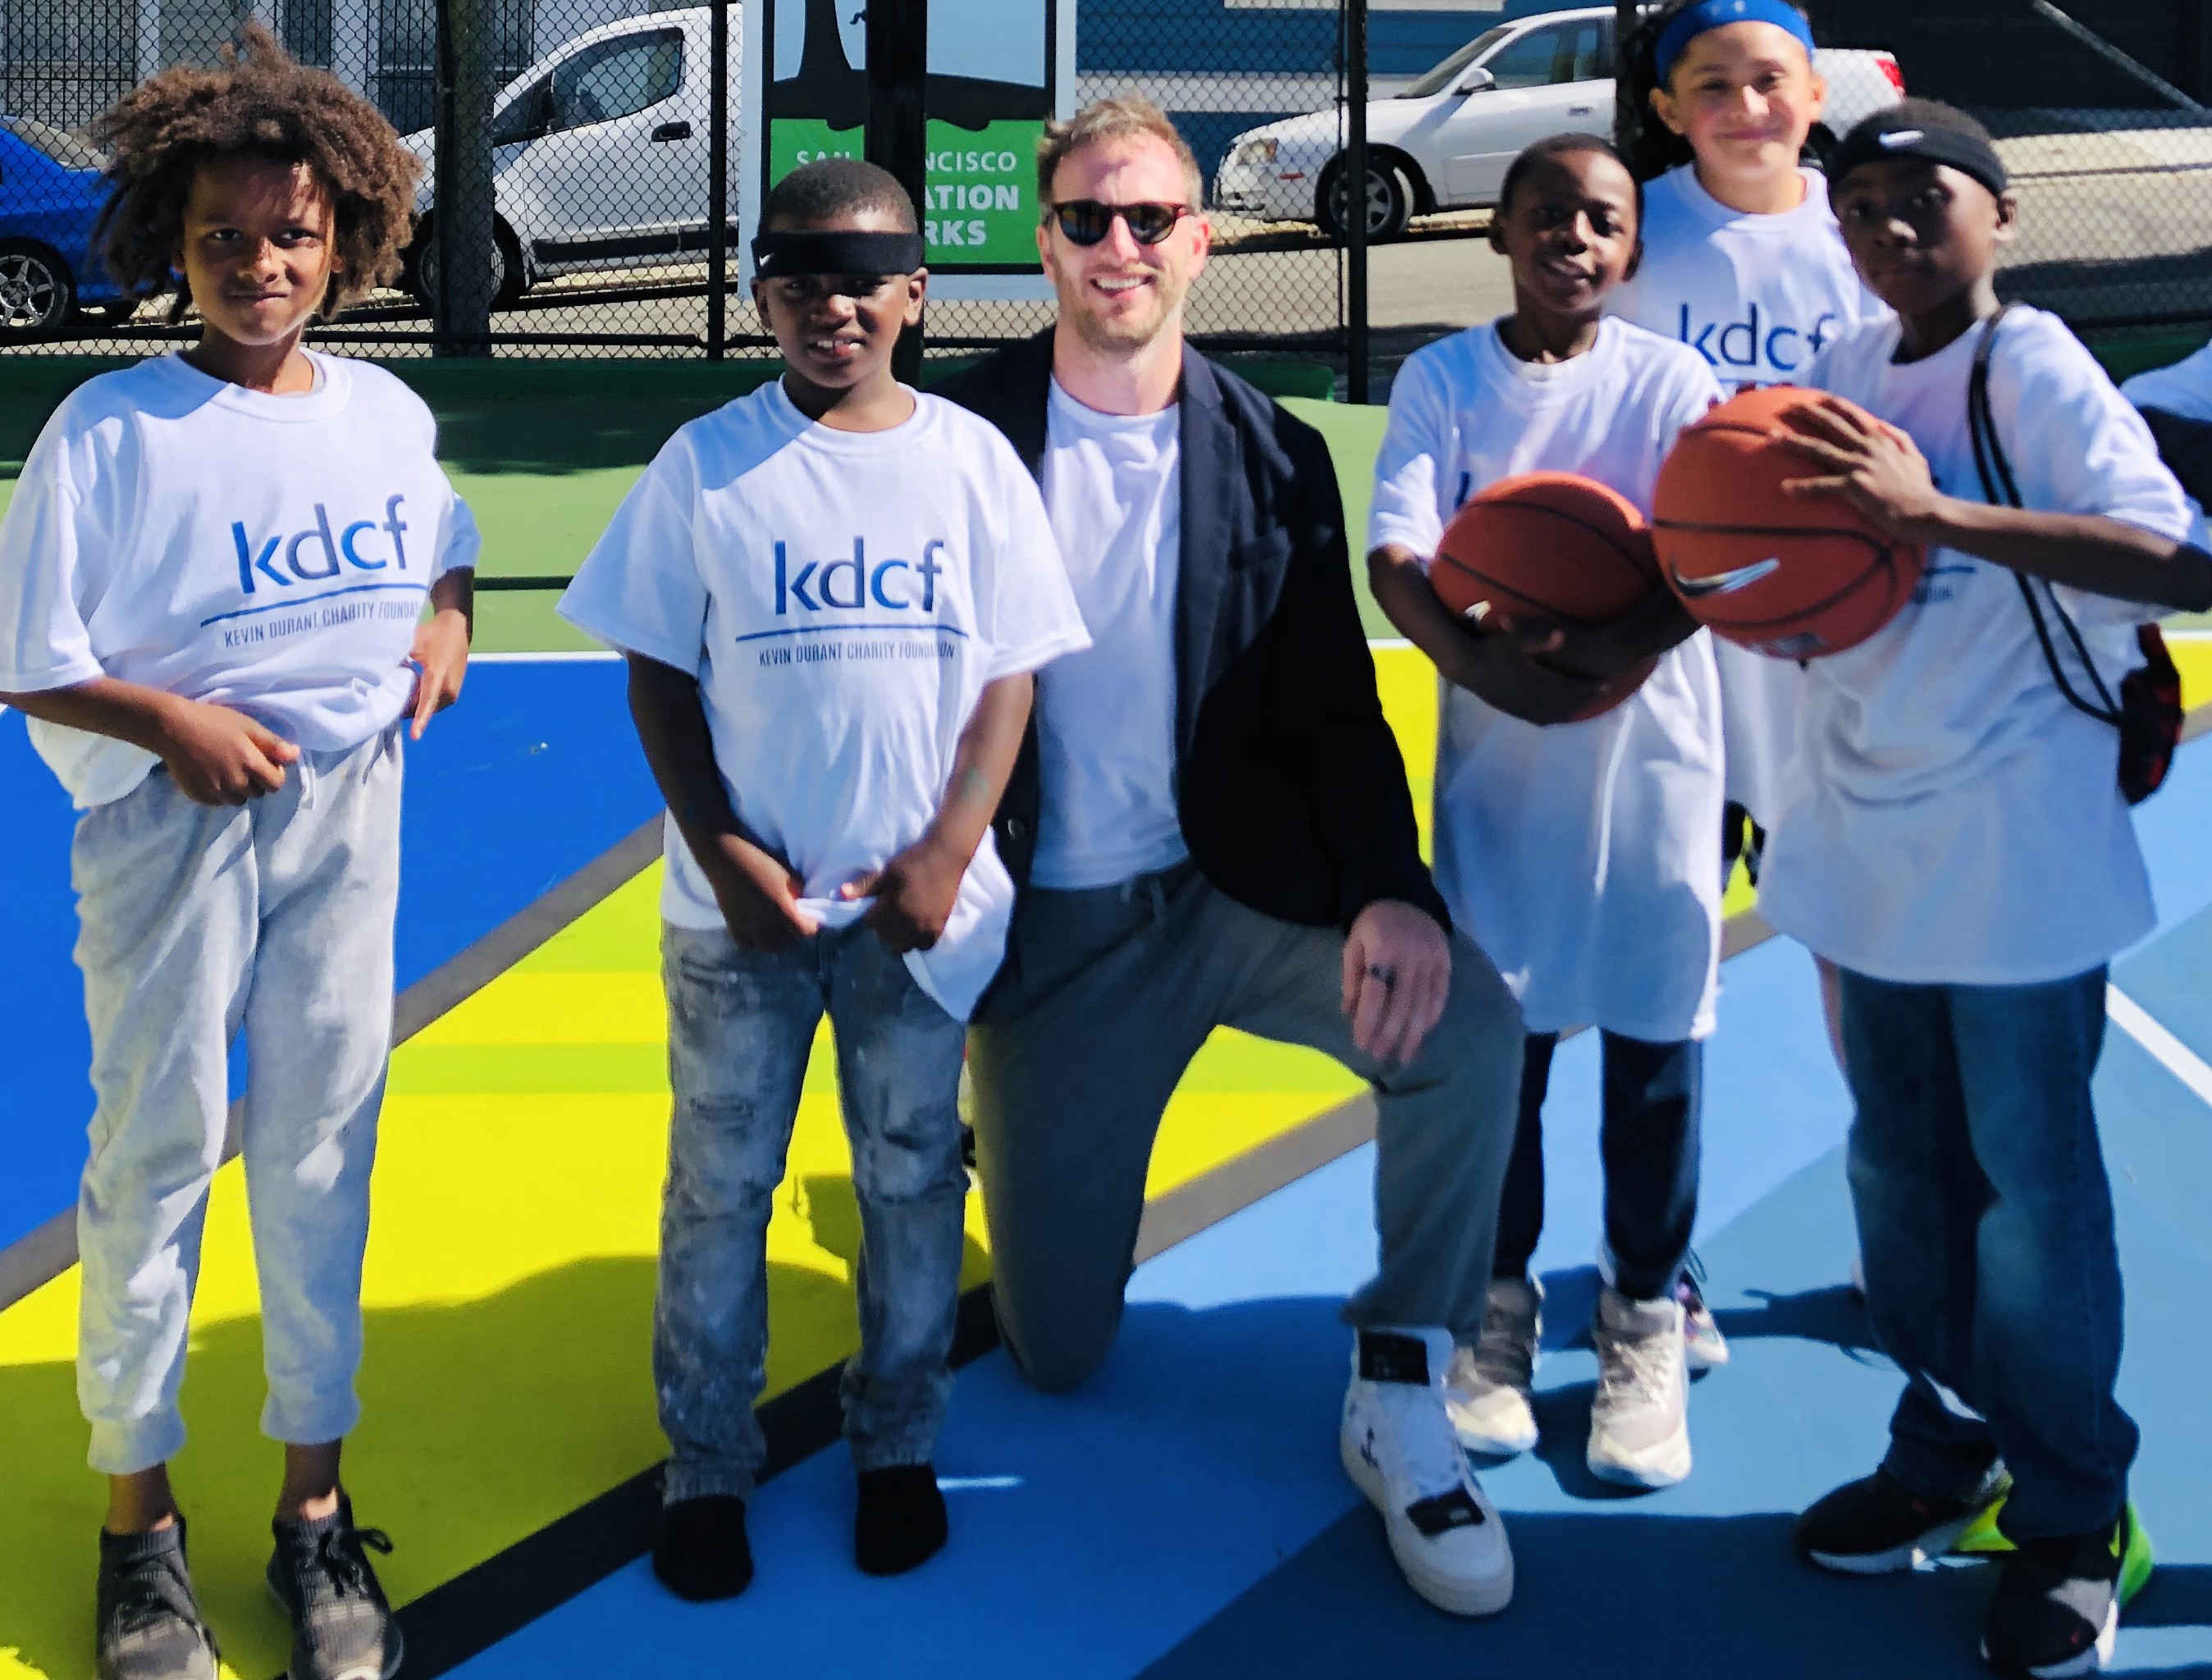 Joe with local youth basketball players at the court opening.